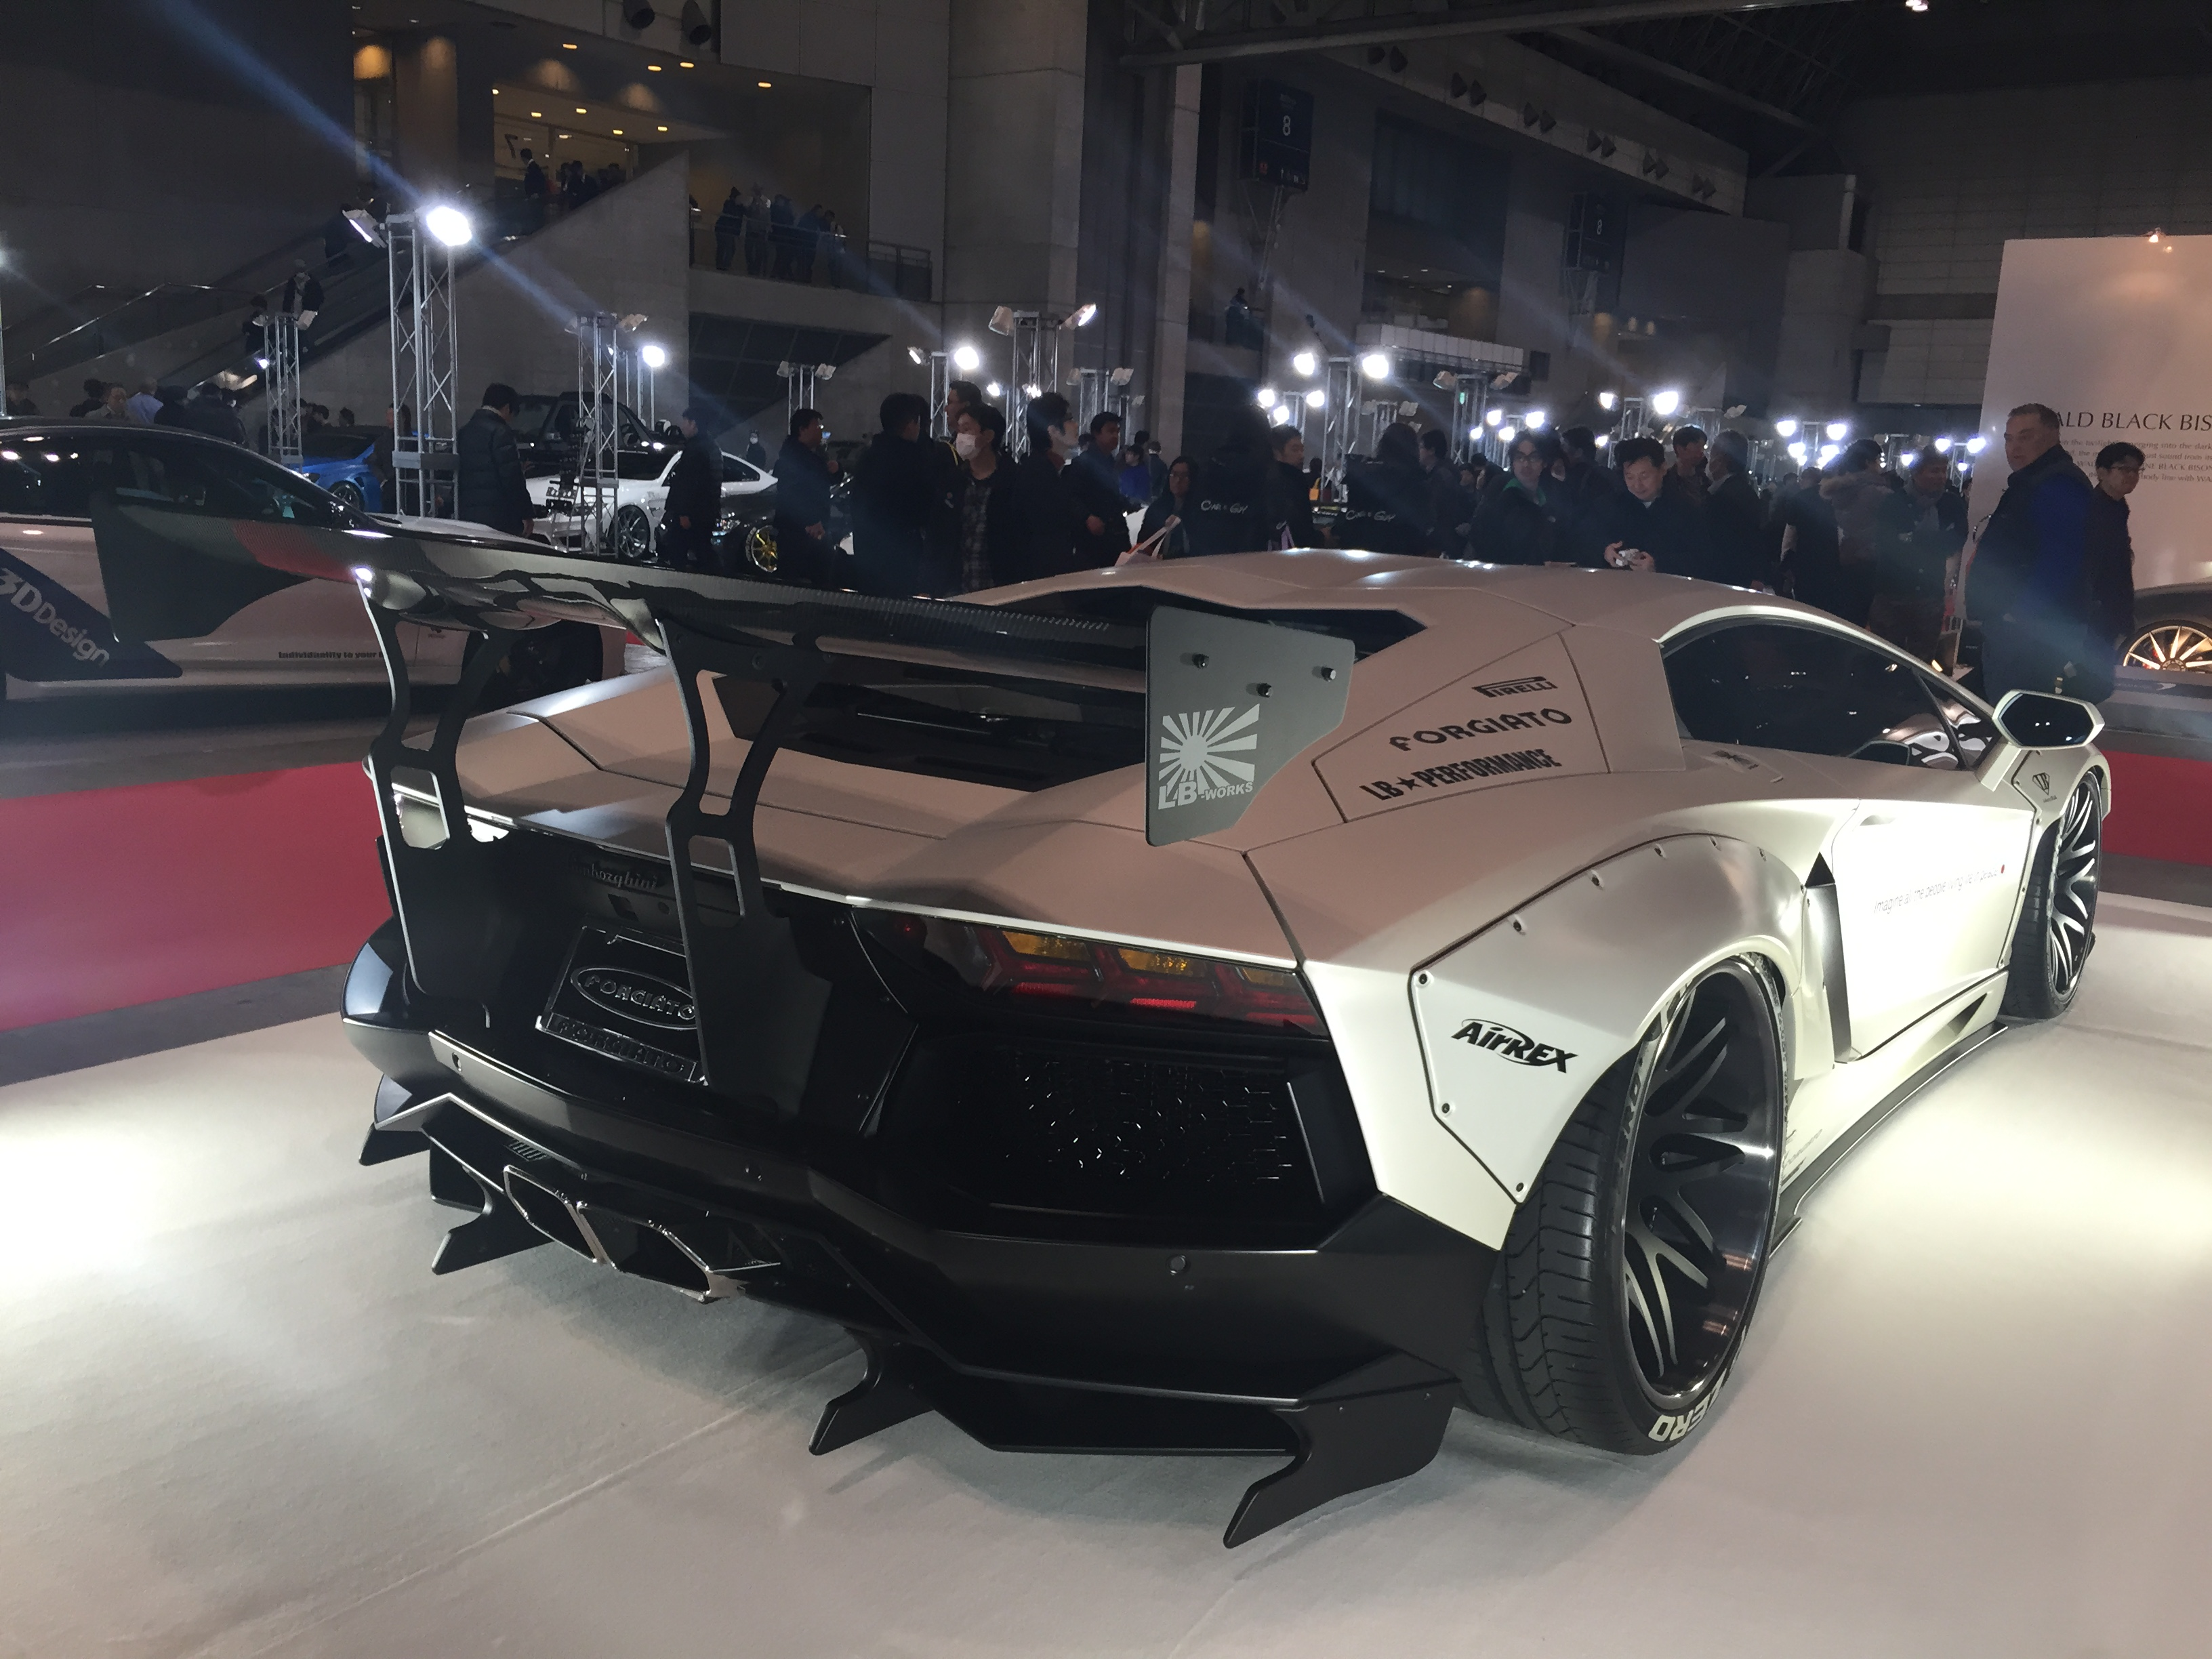 file lb works aventador rear tokyo auto salon. Black Bedroom Furniture Sets. Home Design Ideas